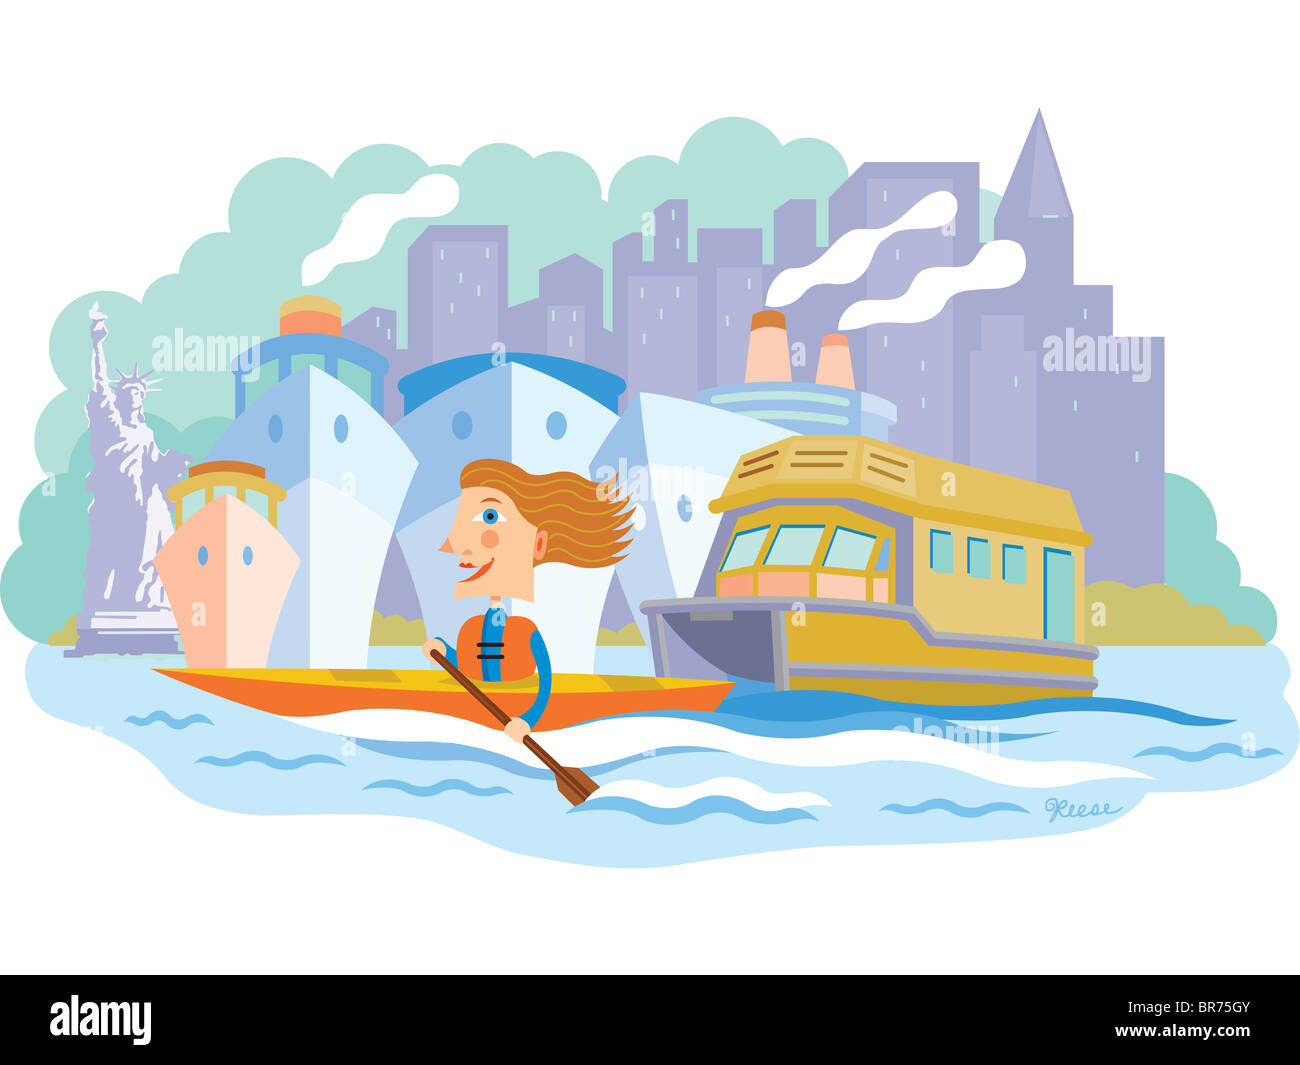 A woman canoeing in the water with ships and boats and New York City behind her - Stock Image